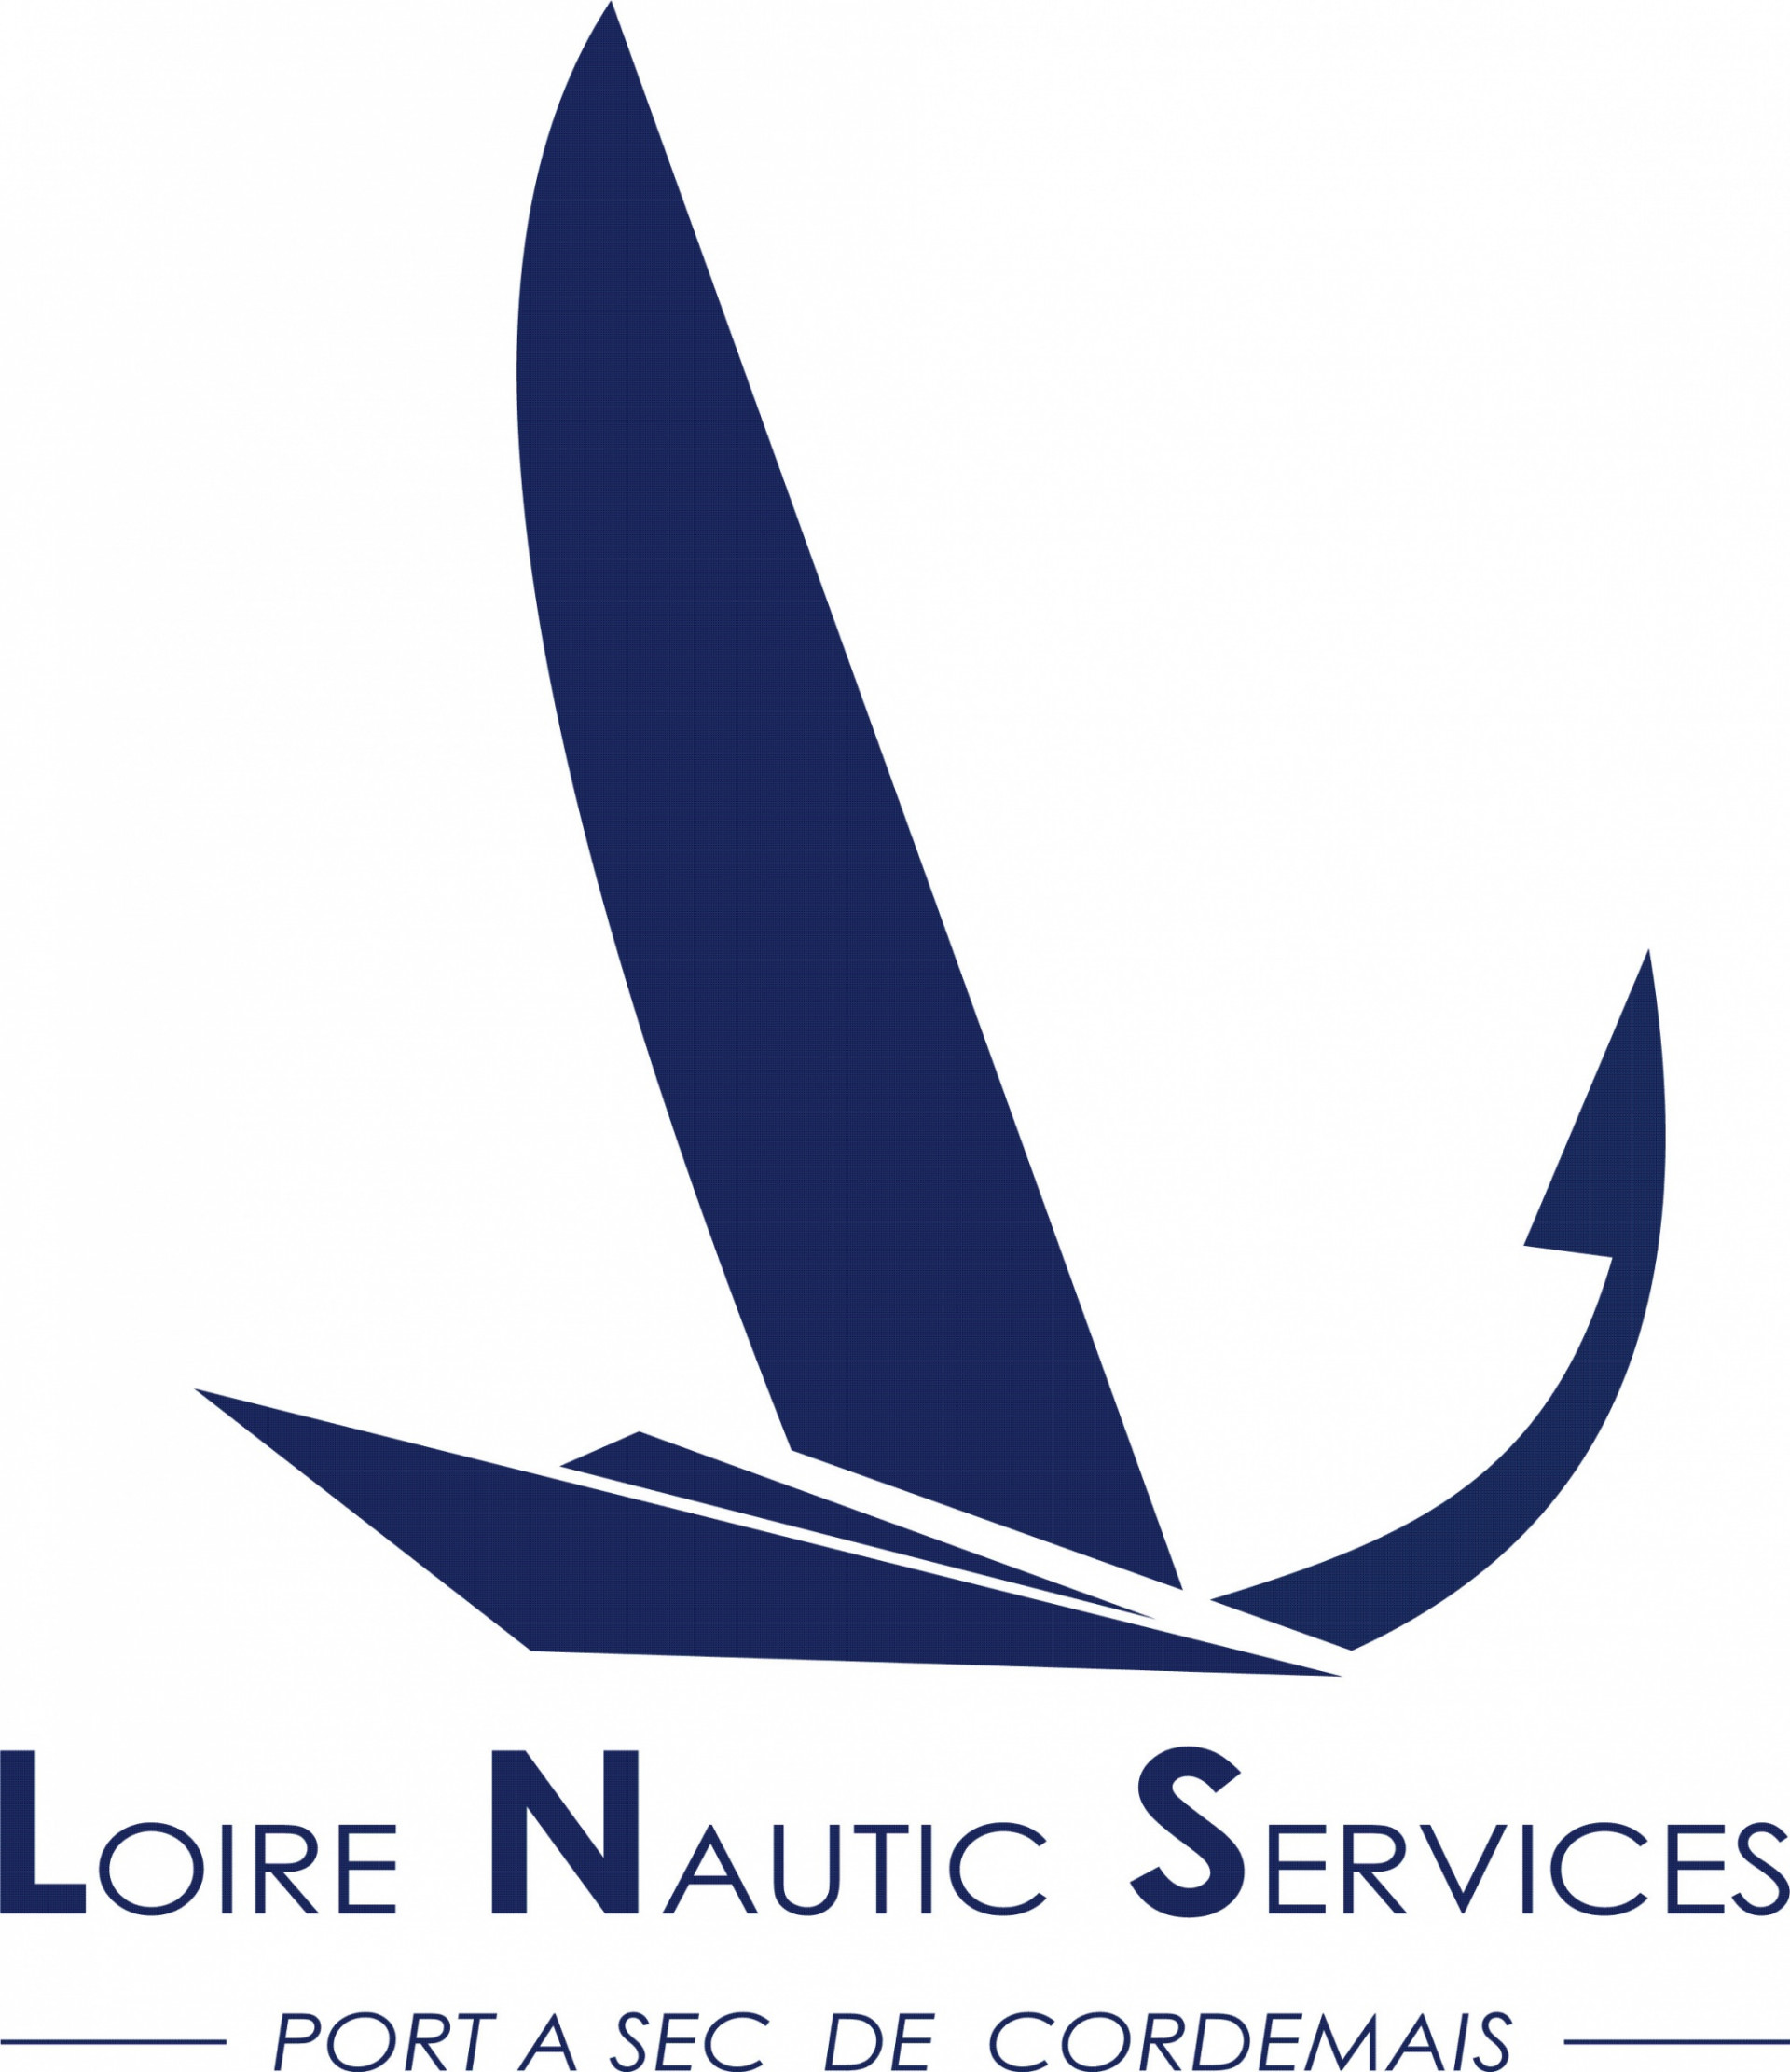 Loire Nautic Services